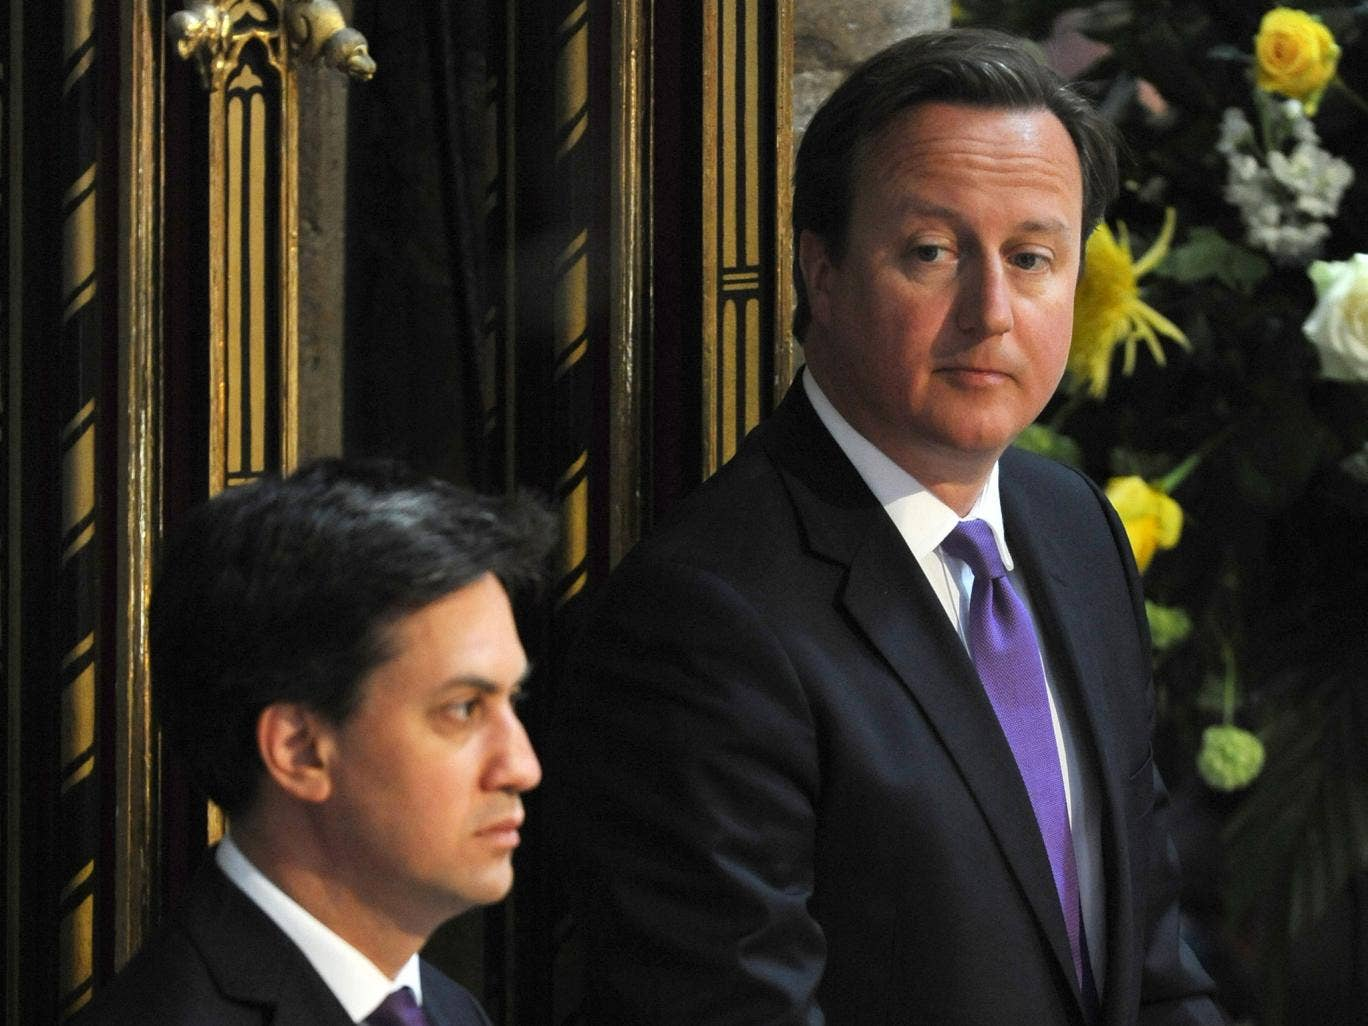 David Cameron's approval rating was plus 2 points, with 44 per cent of voters saying he was doing a good job as Prime Minister